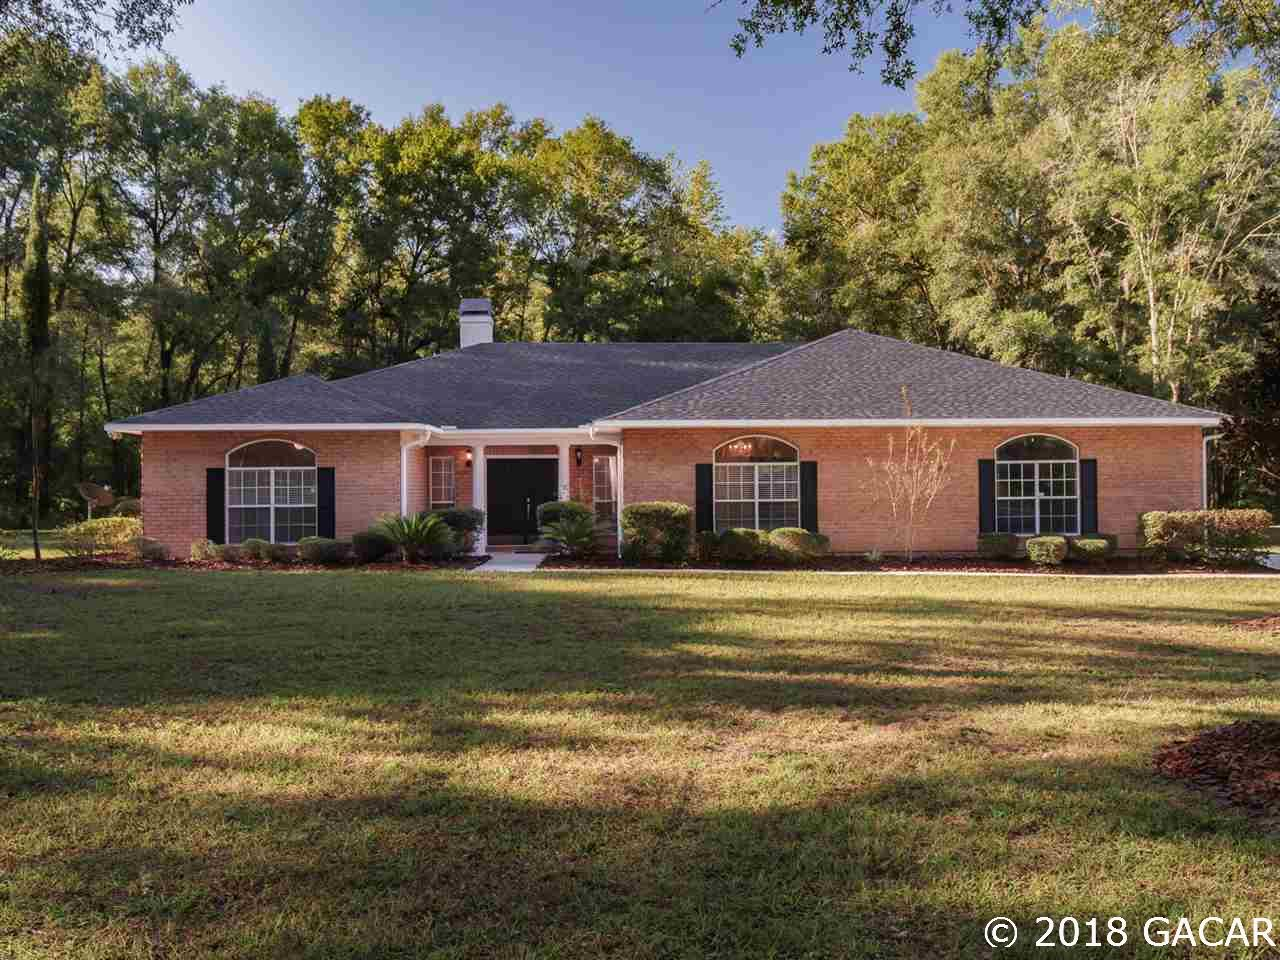 15713 NW 58TH Avenue, Alachua, Florida